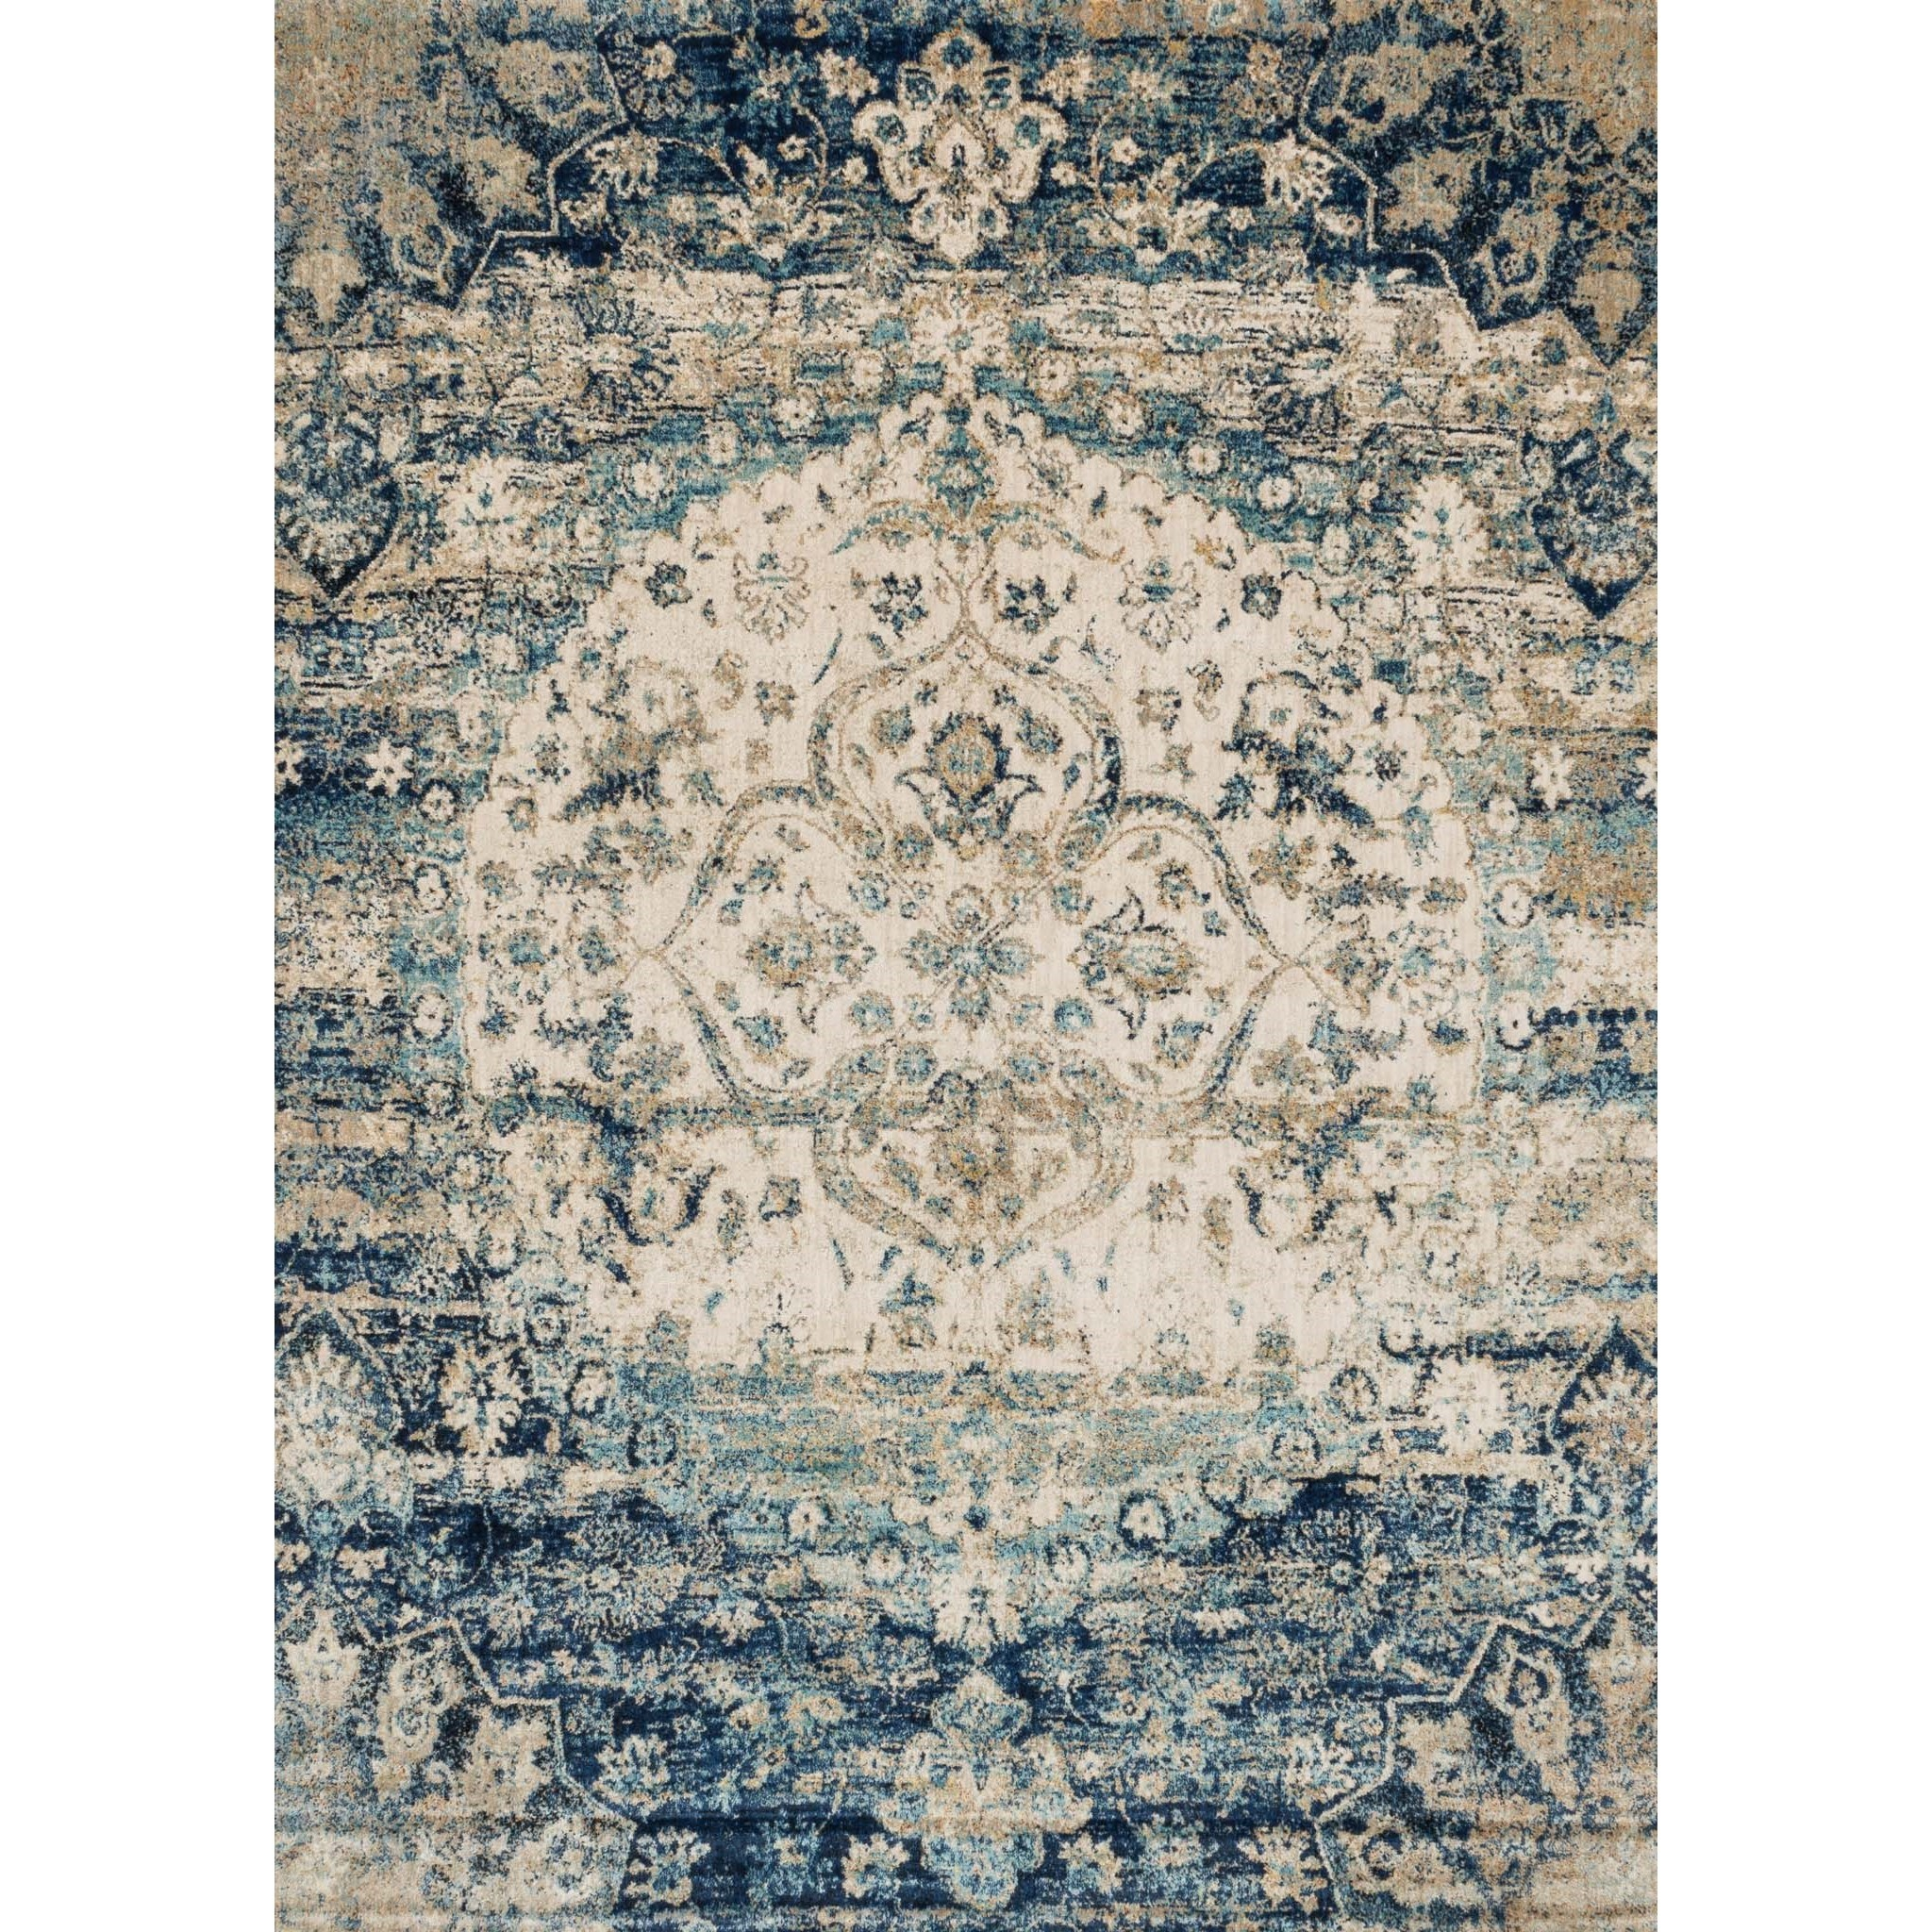 Anastasia 13' X 18' Area Rug by Loloi Rugs at Virginia Furniture Market